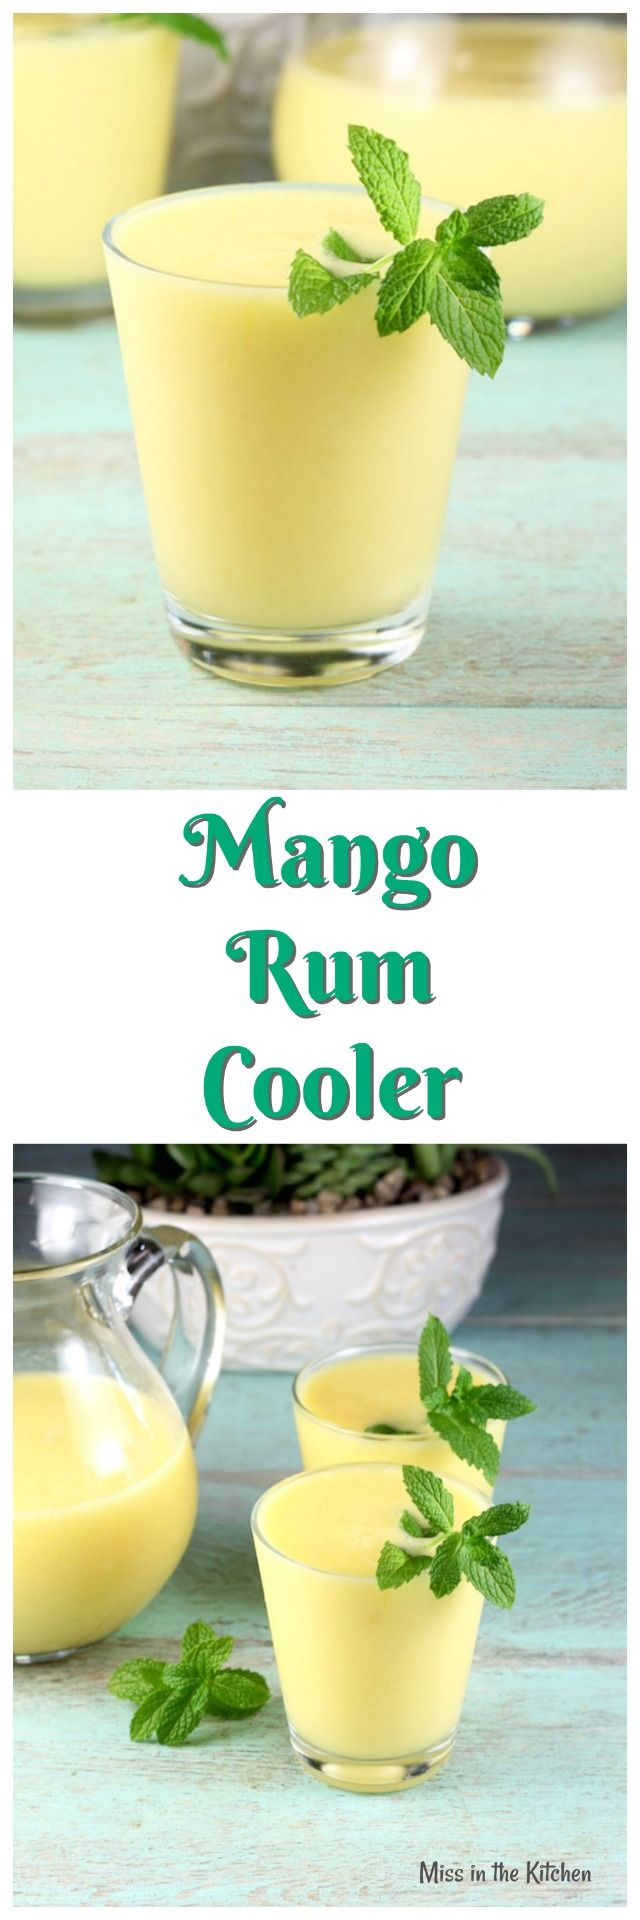 Mango Rum Cooler Cocktail Recipe from MissintheKitchen.com Perfect summer party drink!